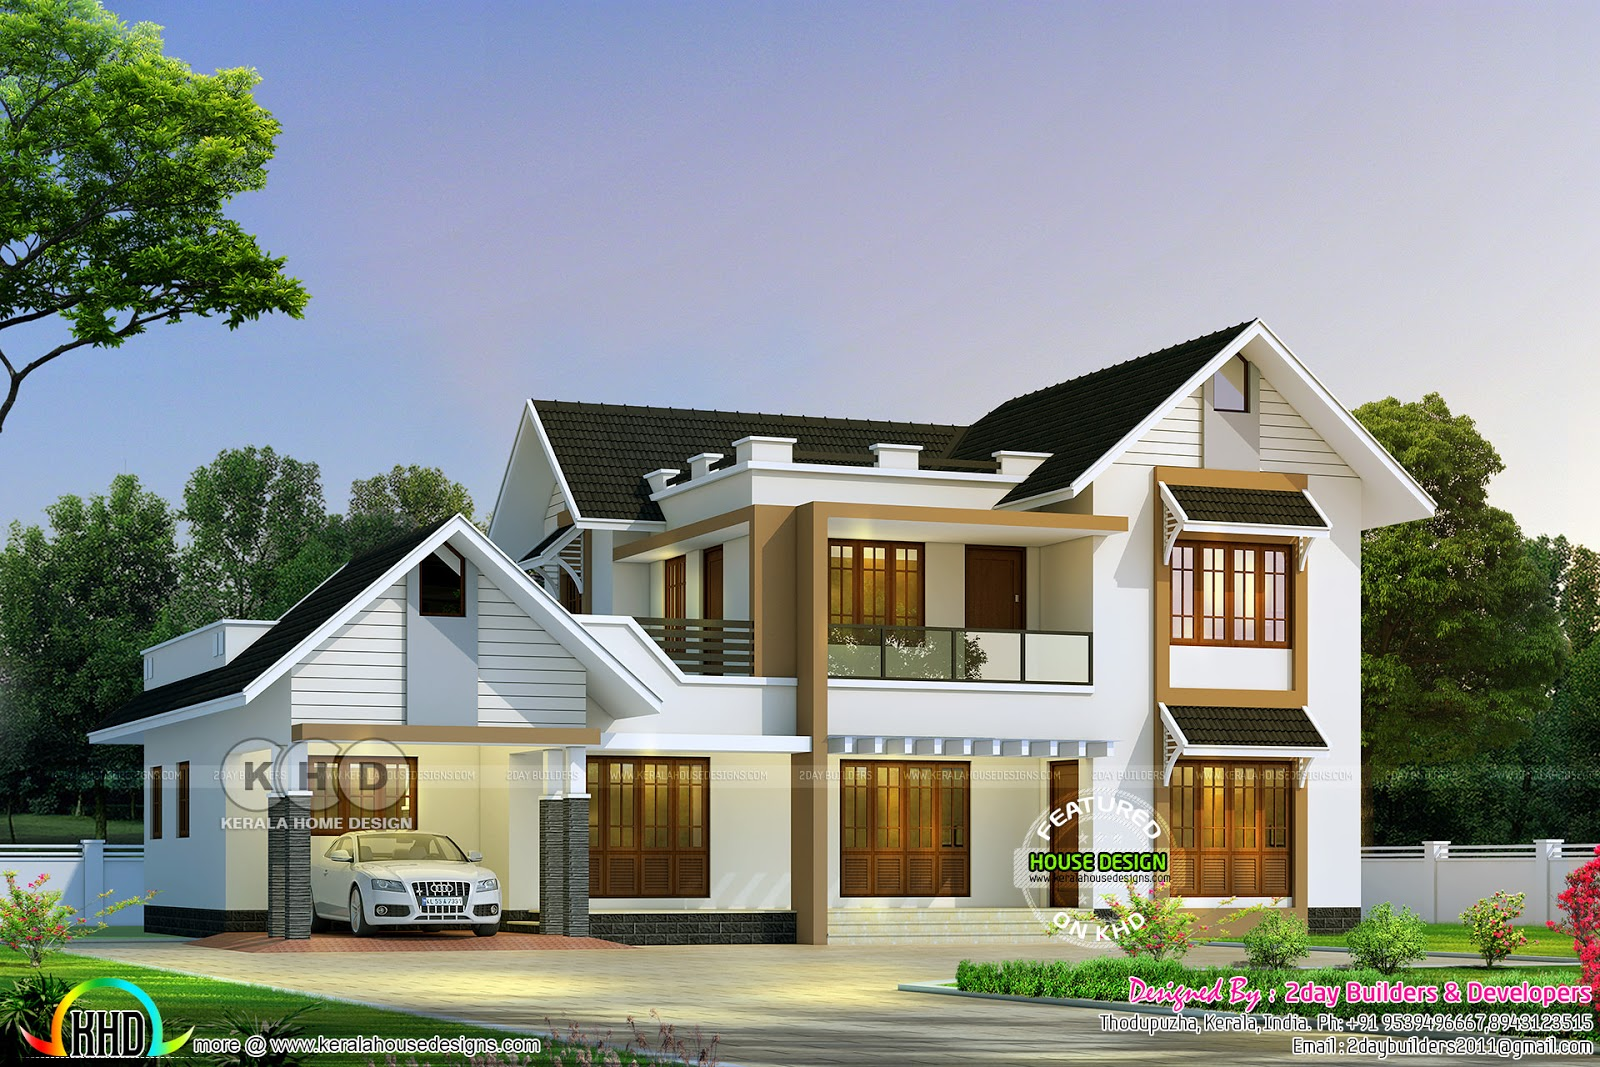 2017 kerala home design and floor plans for Kerala contemporary home designs